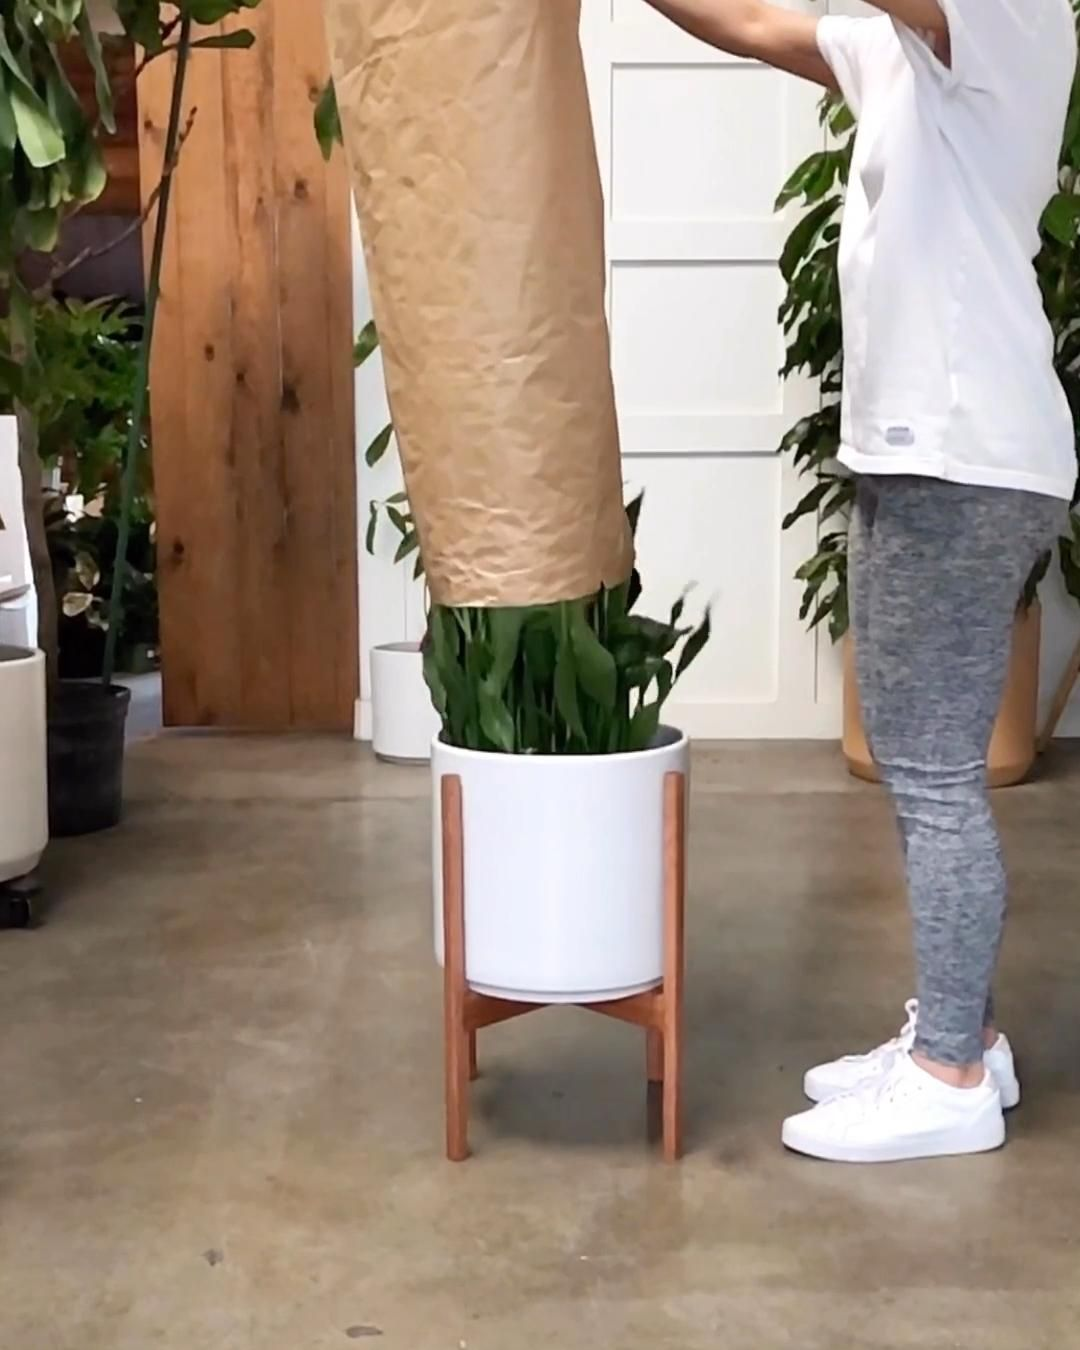 Plant Porn 🌱 Peace Lily aka Spathiphyllum + Modern Planter and Plant Stand